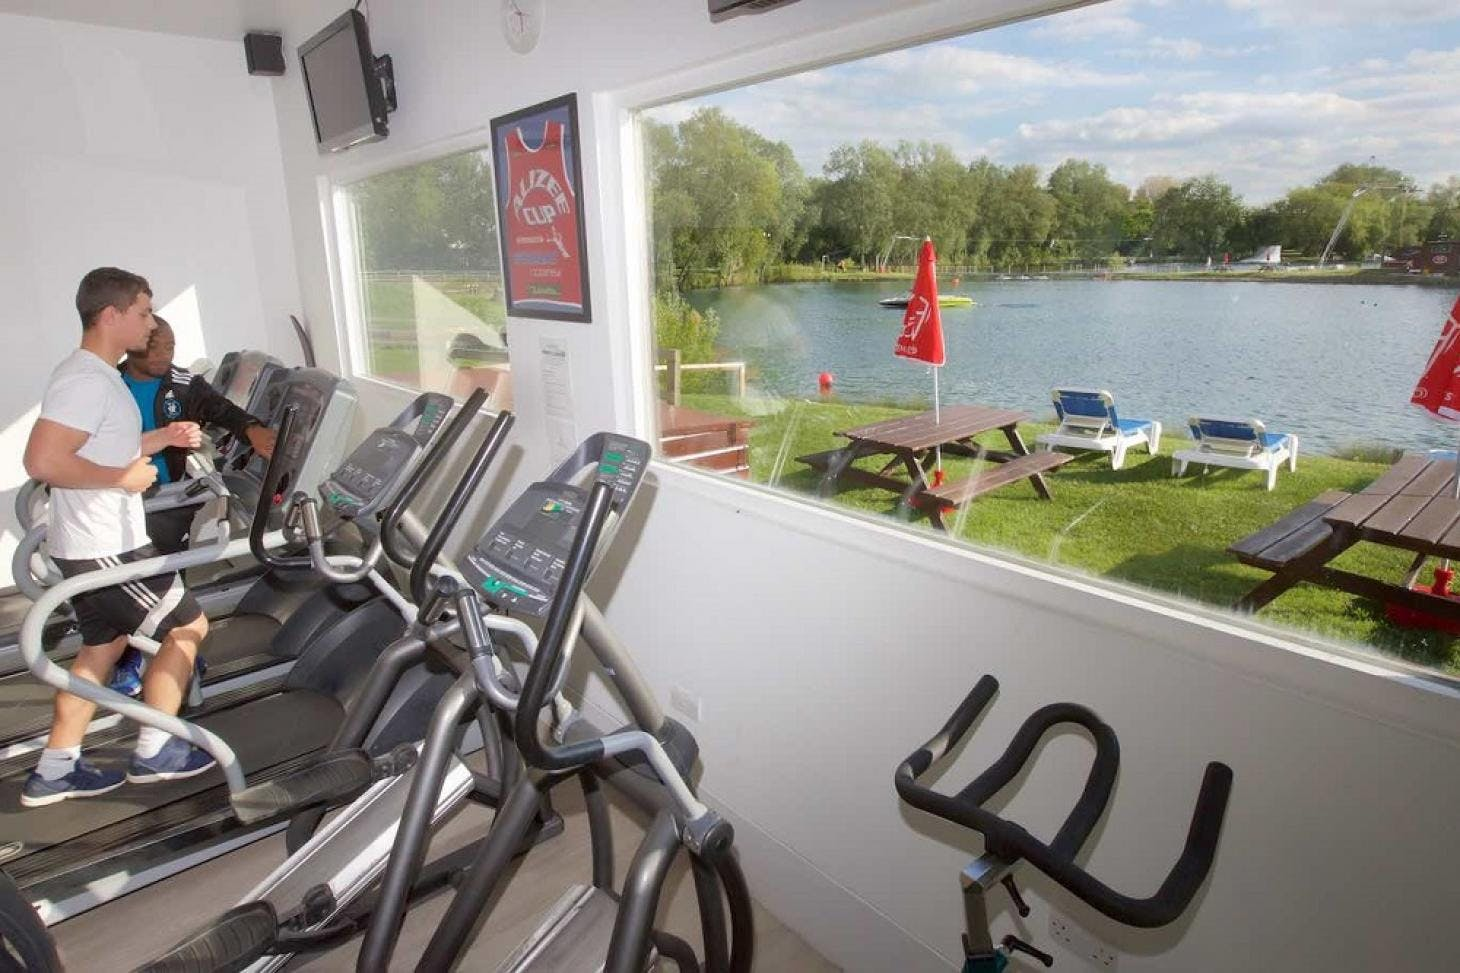 Lakeside Health & Fitness Indoor gym